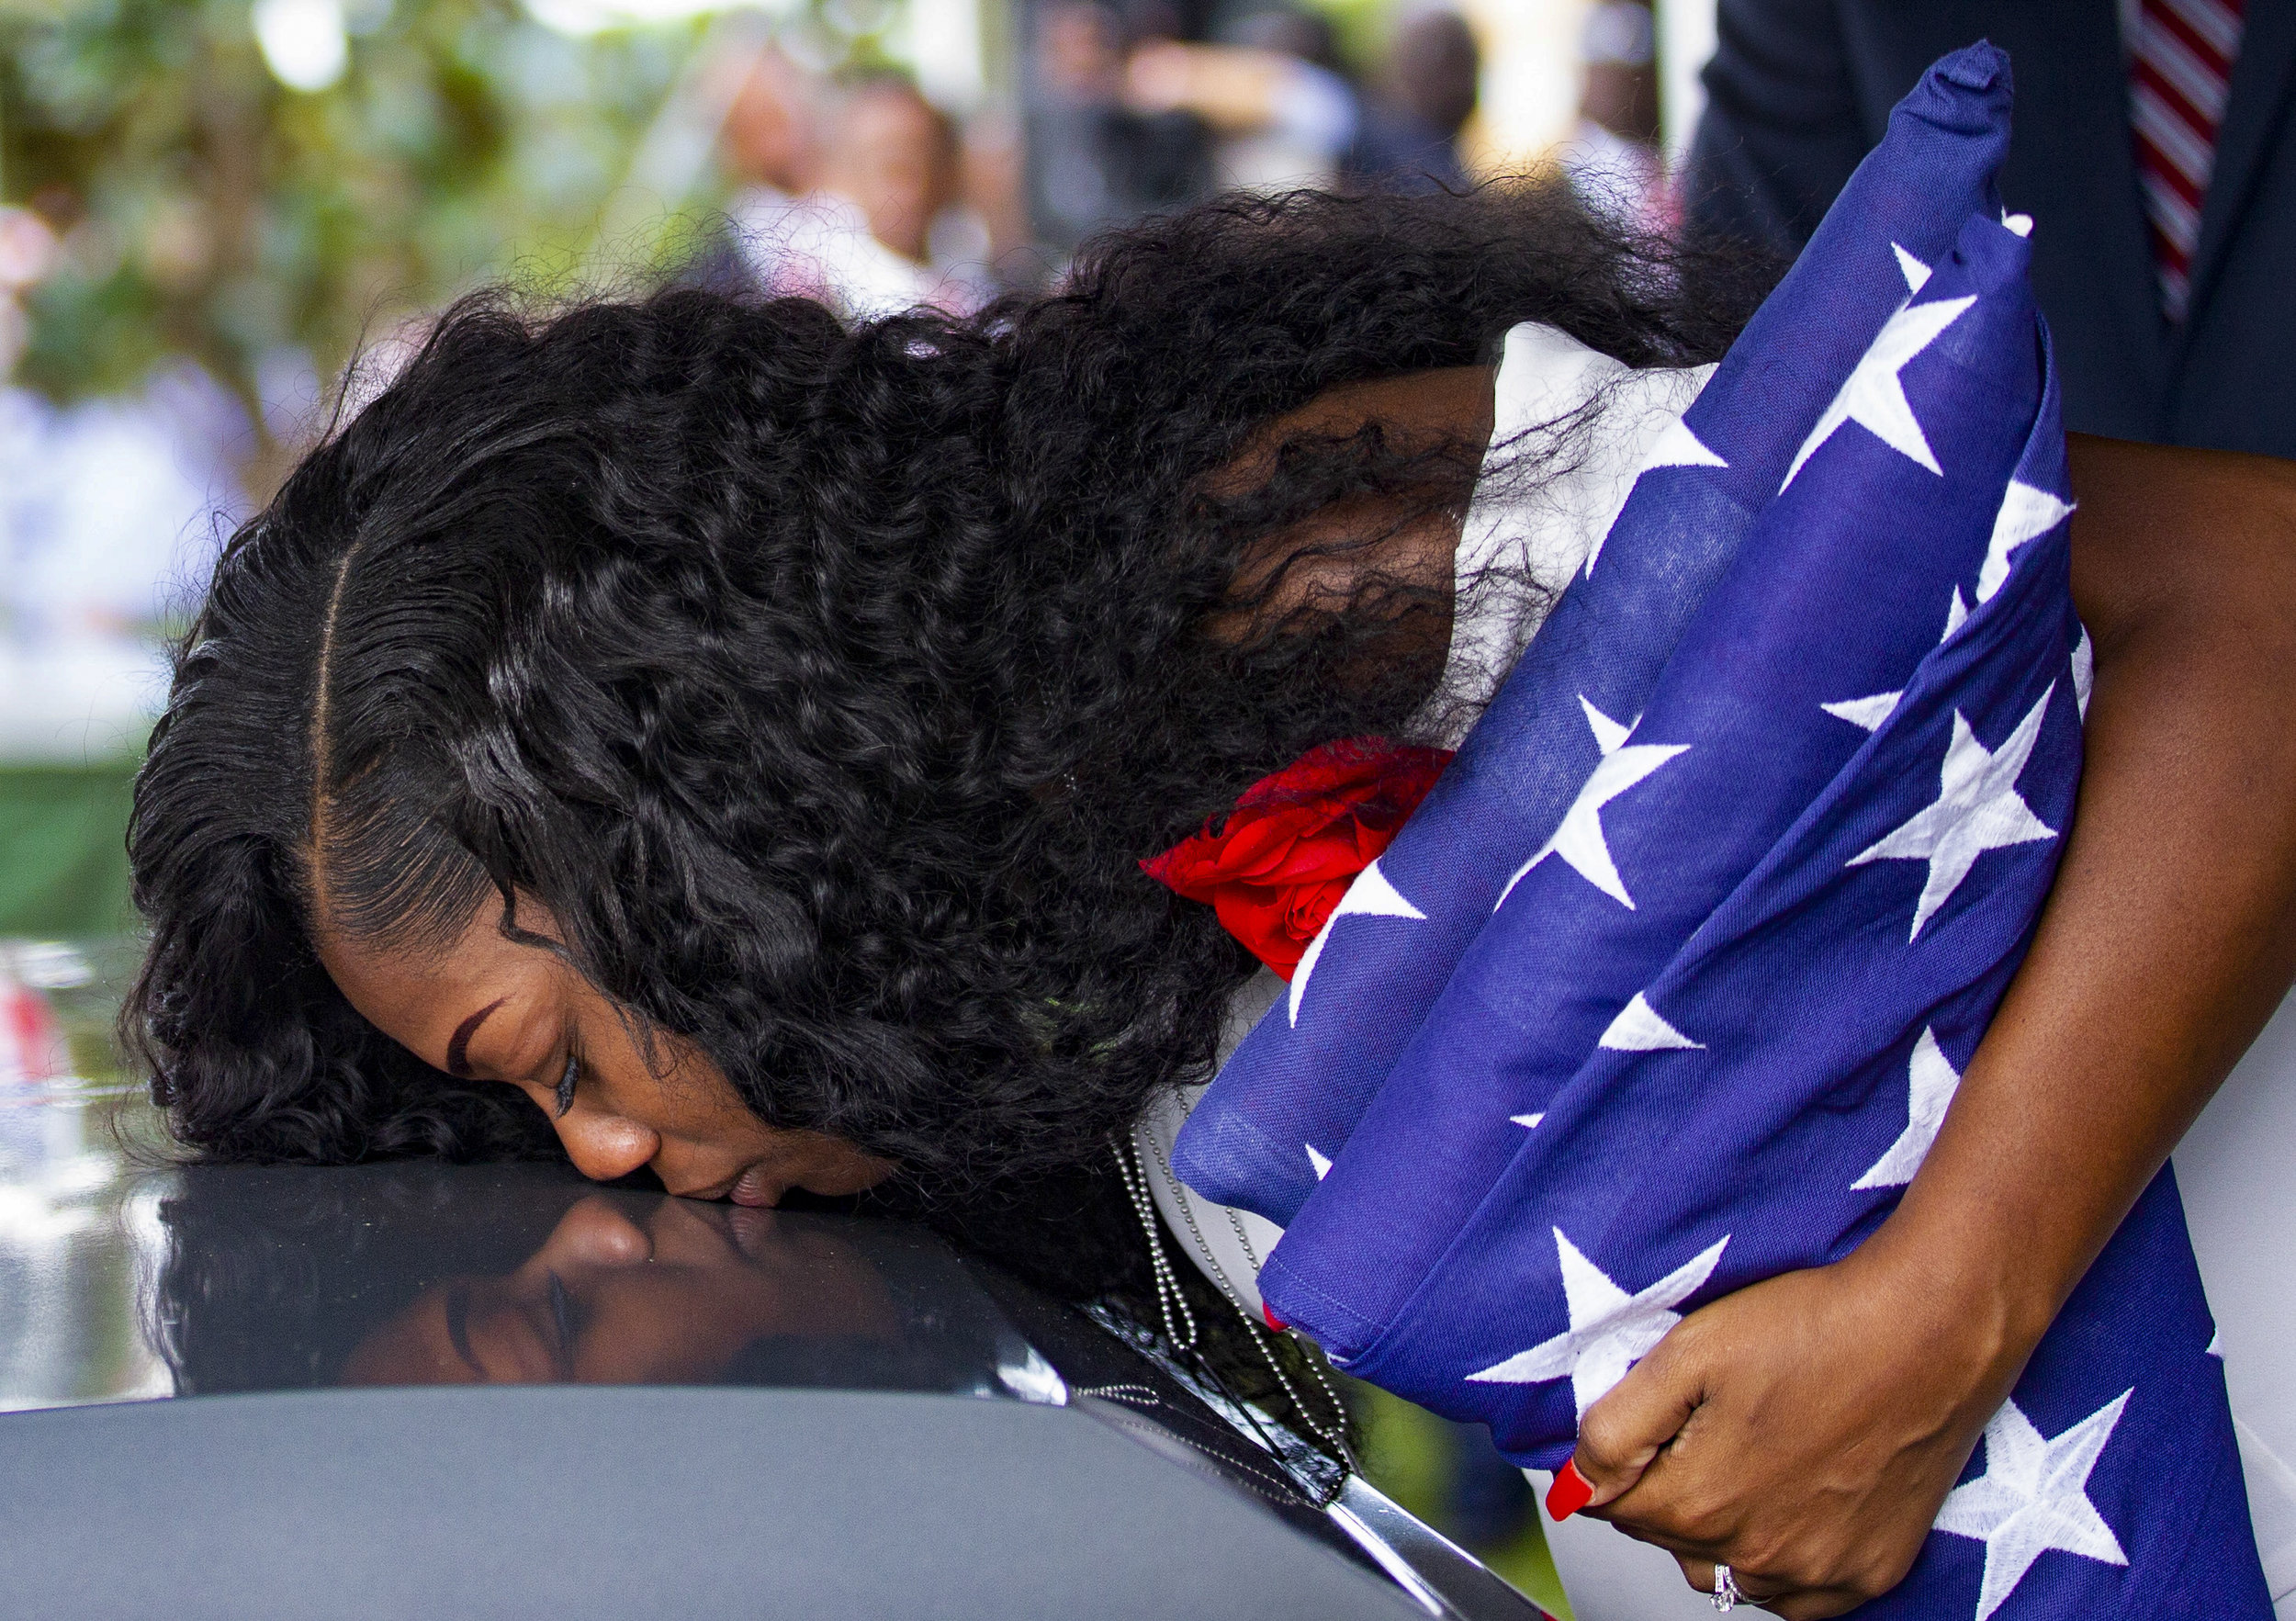 Myeshia Johnson kisses the casket of her husband, Sgt. La David Johnson, during his burial service at Fred Hunter's Hollywood Memorial Gardens in Hollywood, Florida on Saturday, October 21, 2017.